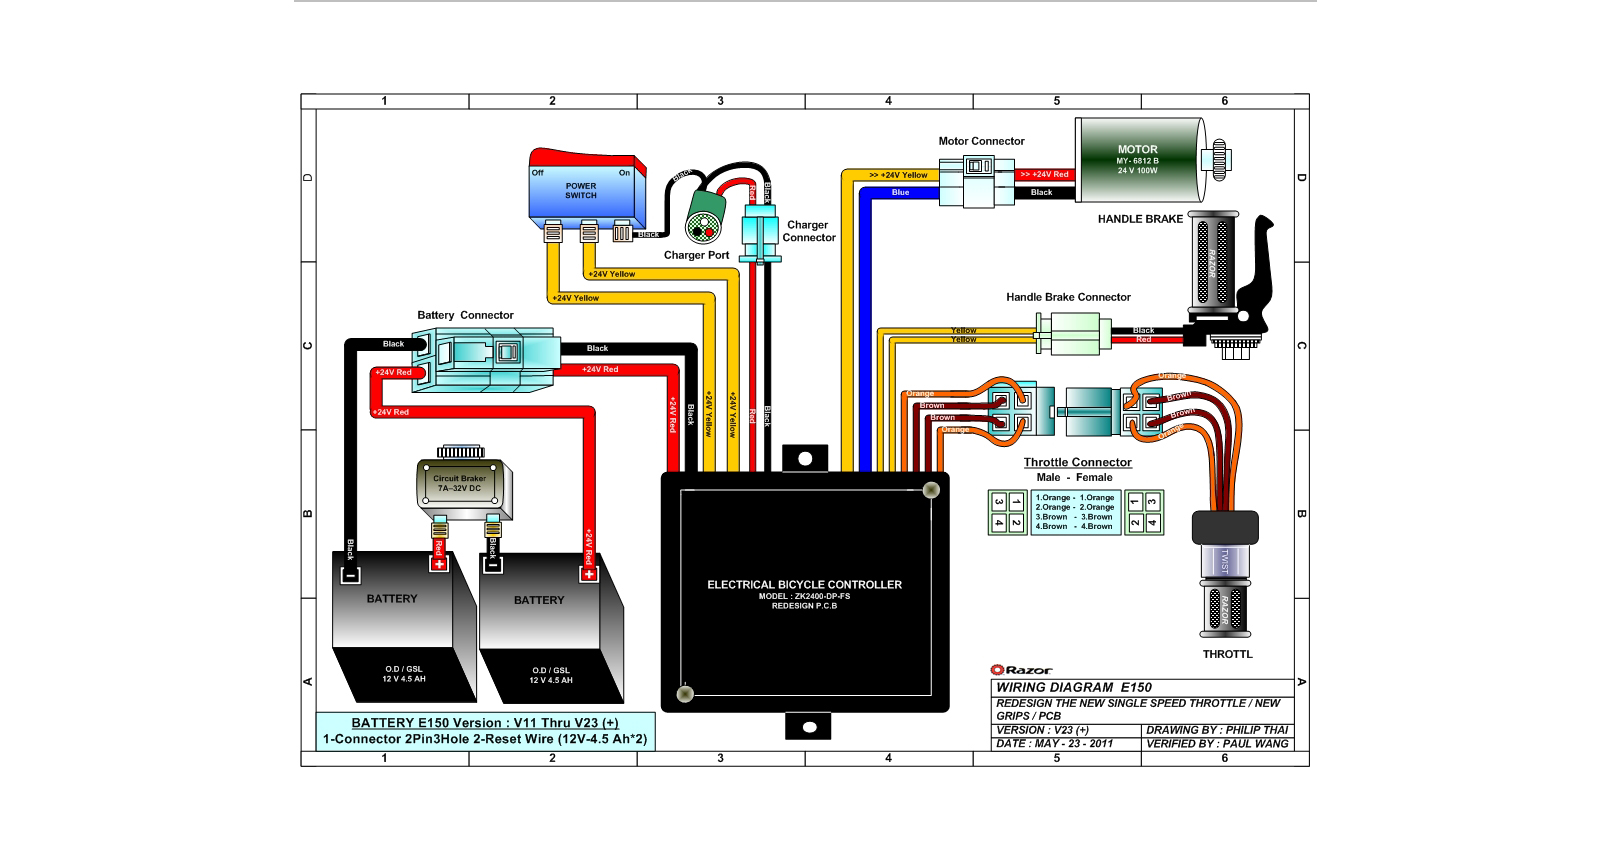 ... E175 (versions 19-21) Wiring Diagram ...